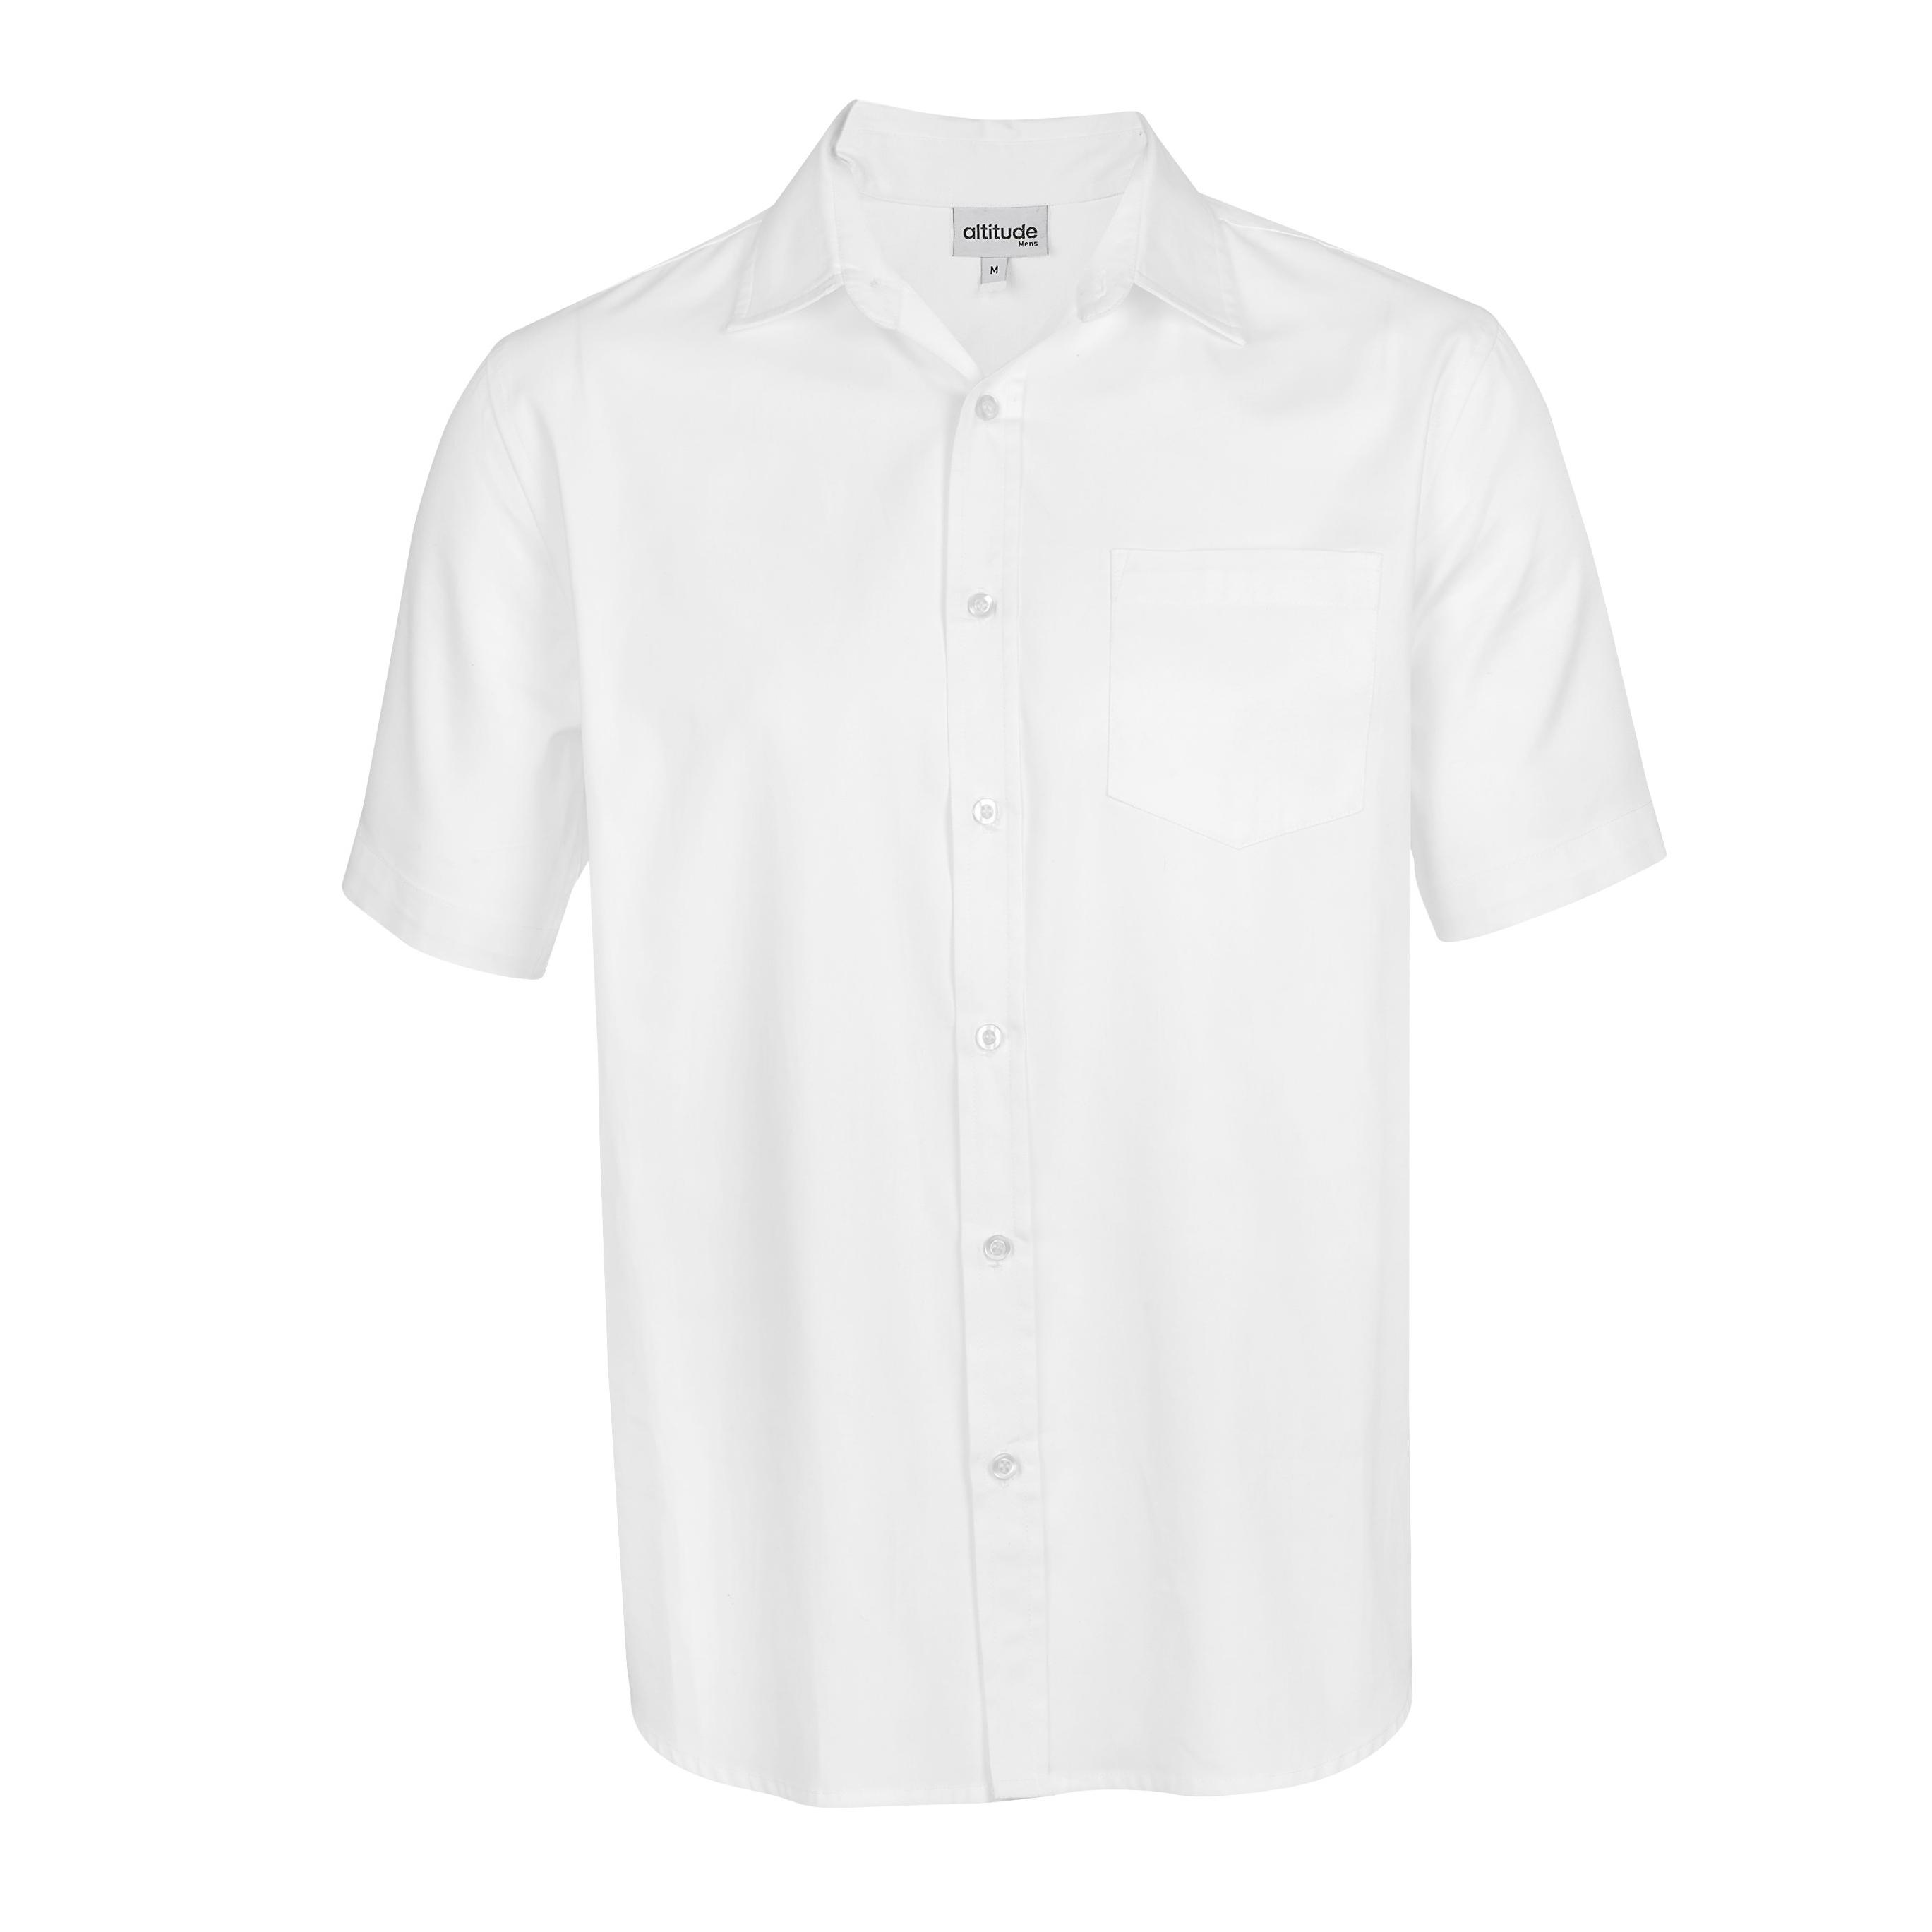 Mens Short Sleeve Seattle Twill Shirt -white Only